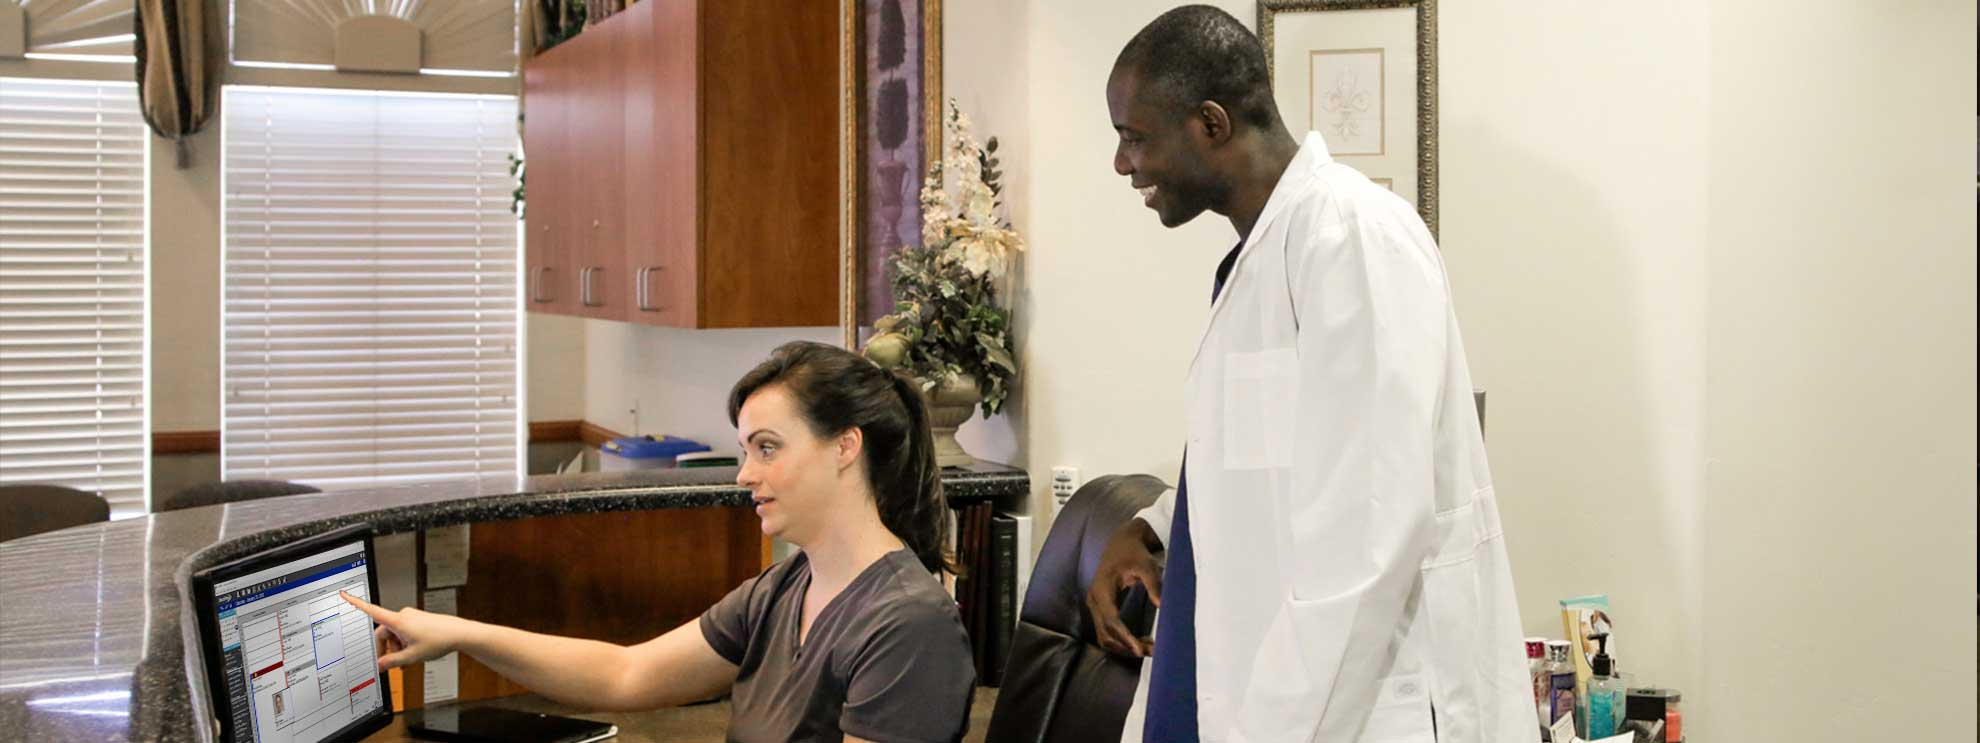 Image of office manager training dentist on dental software